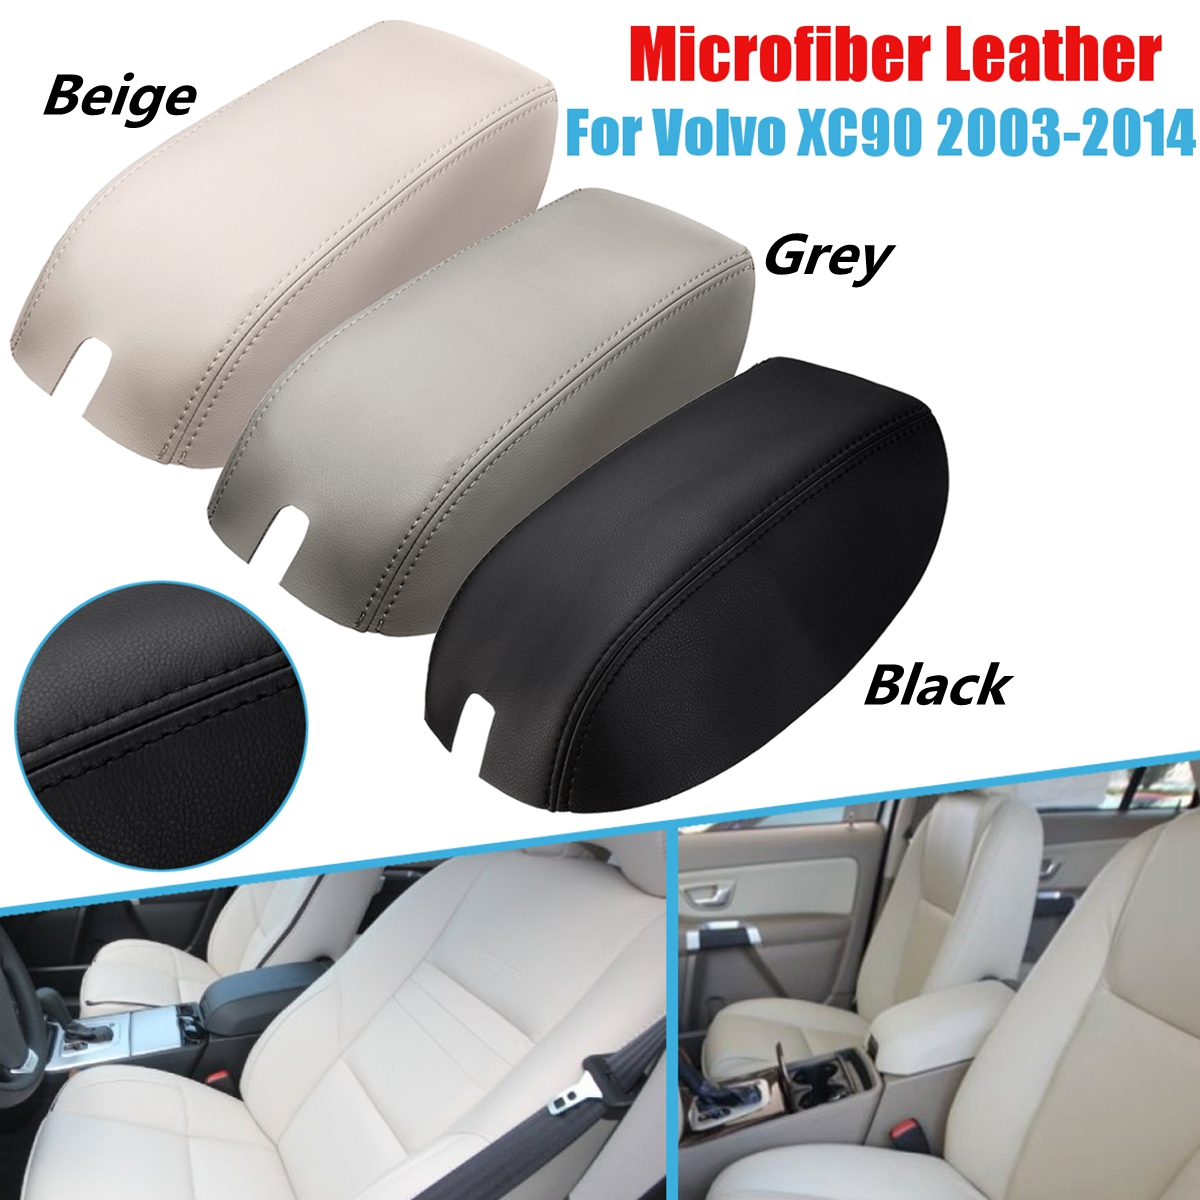 Gray Console Center Armrest Arm Rest Cover Lid For Volvo XC90 2004-2014 08 09 10